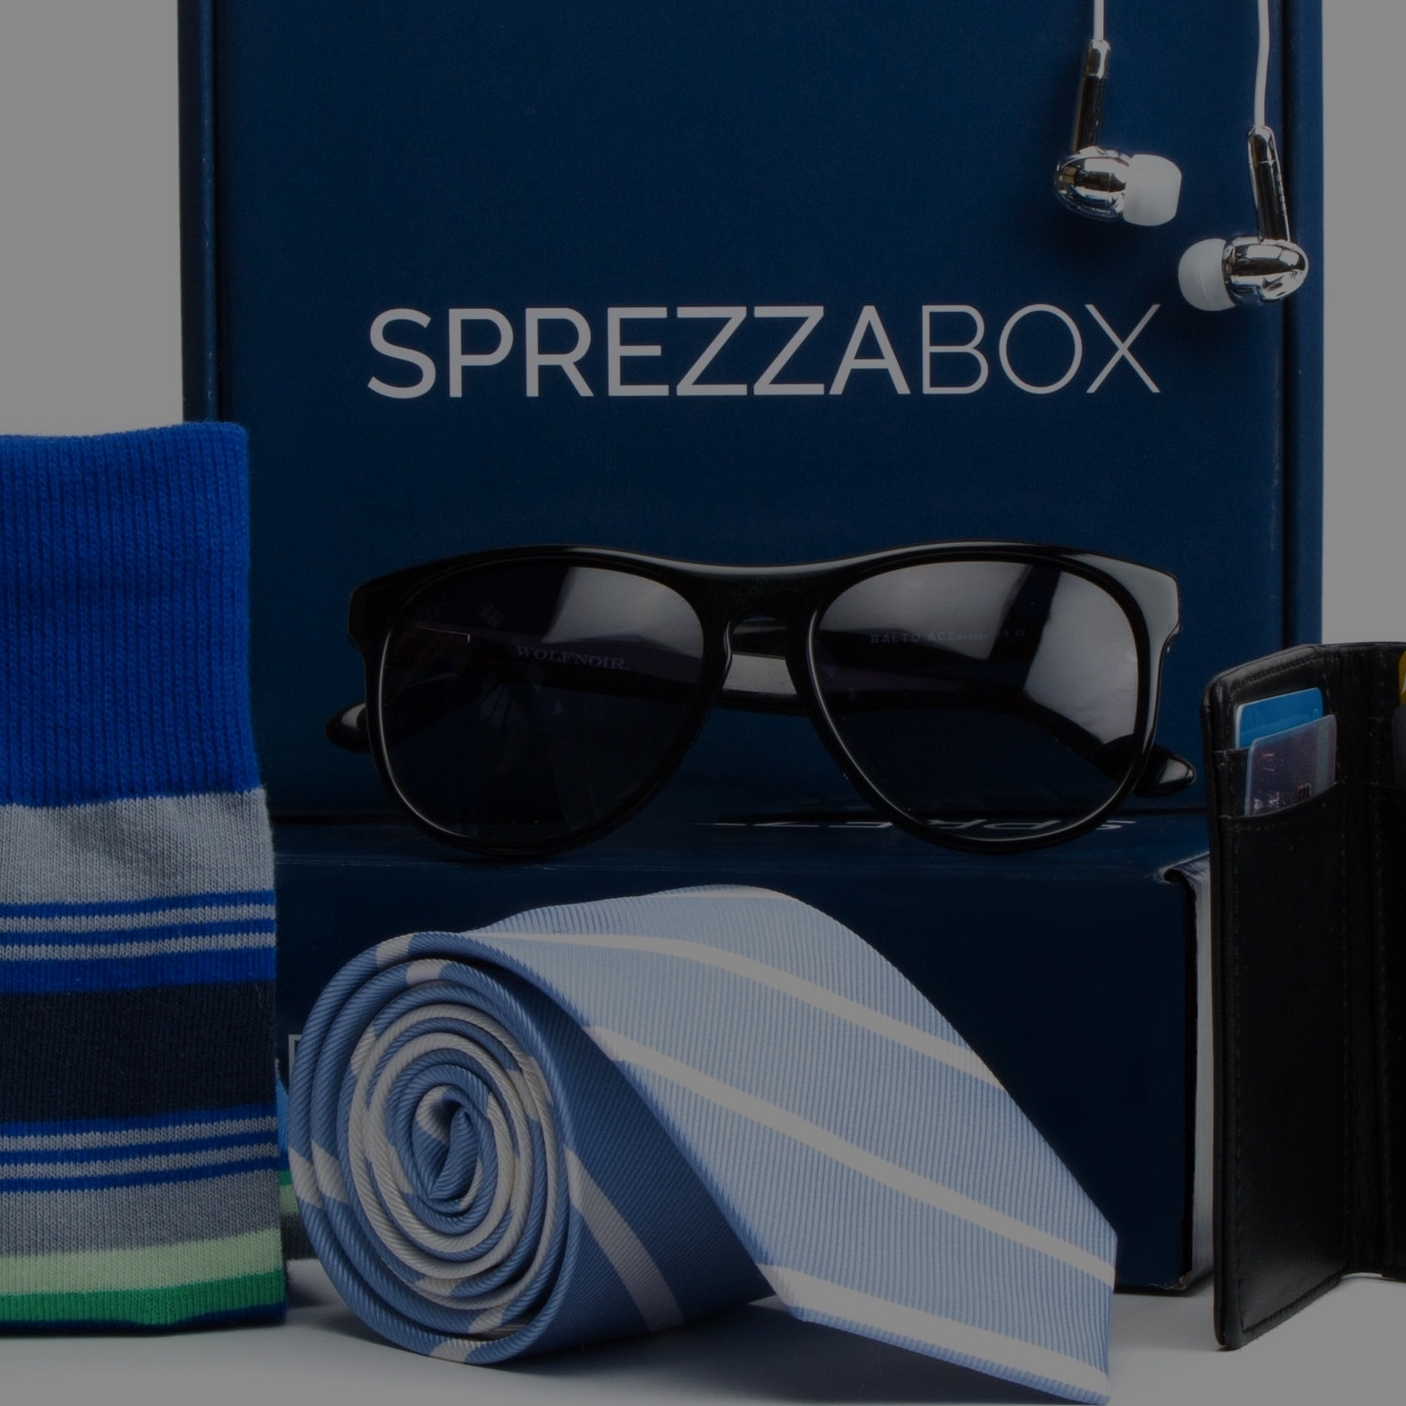 SprezzaBox - An accessories box with items like ties, pocket squares, socks, and more.